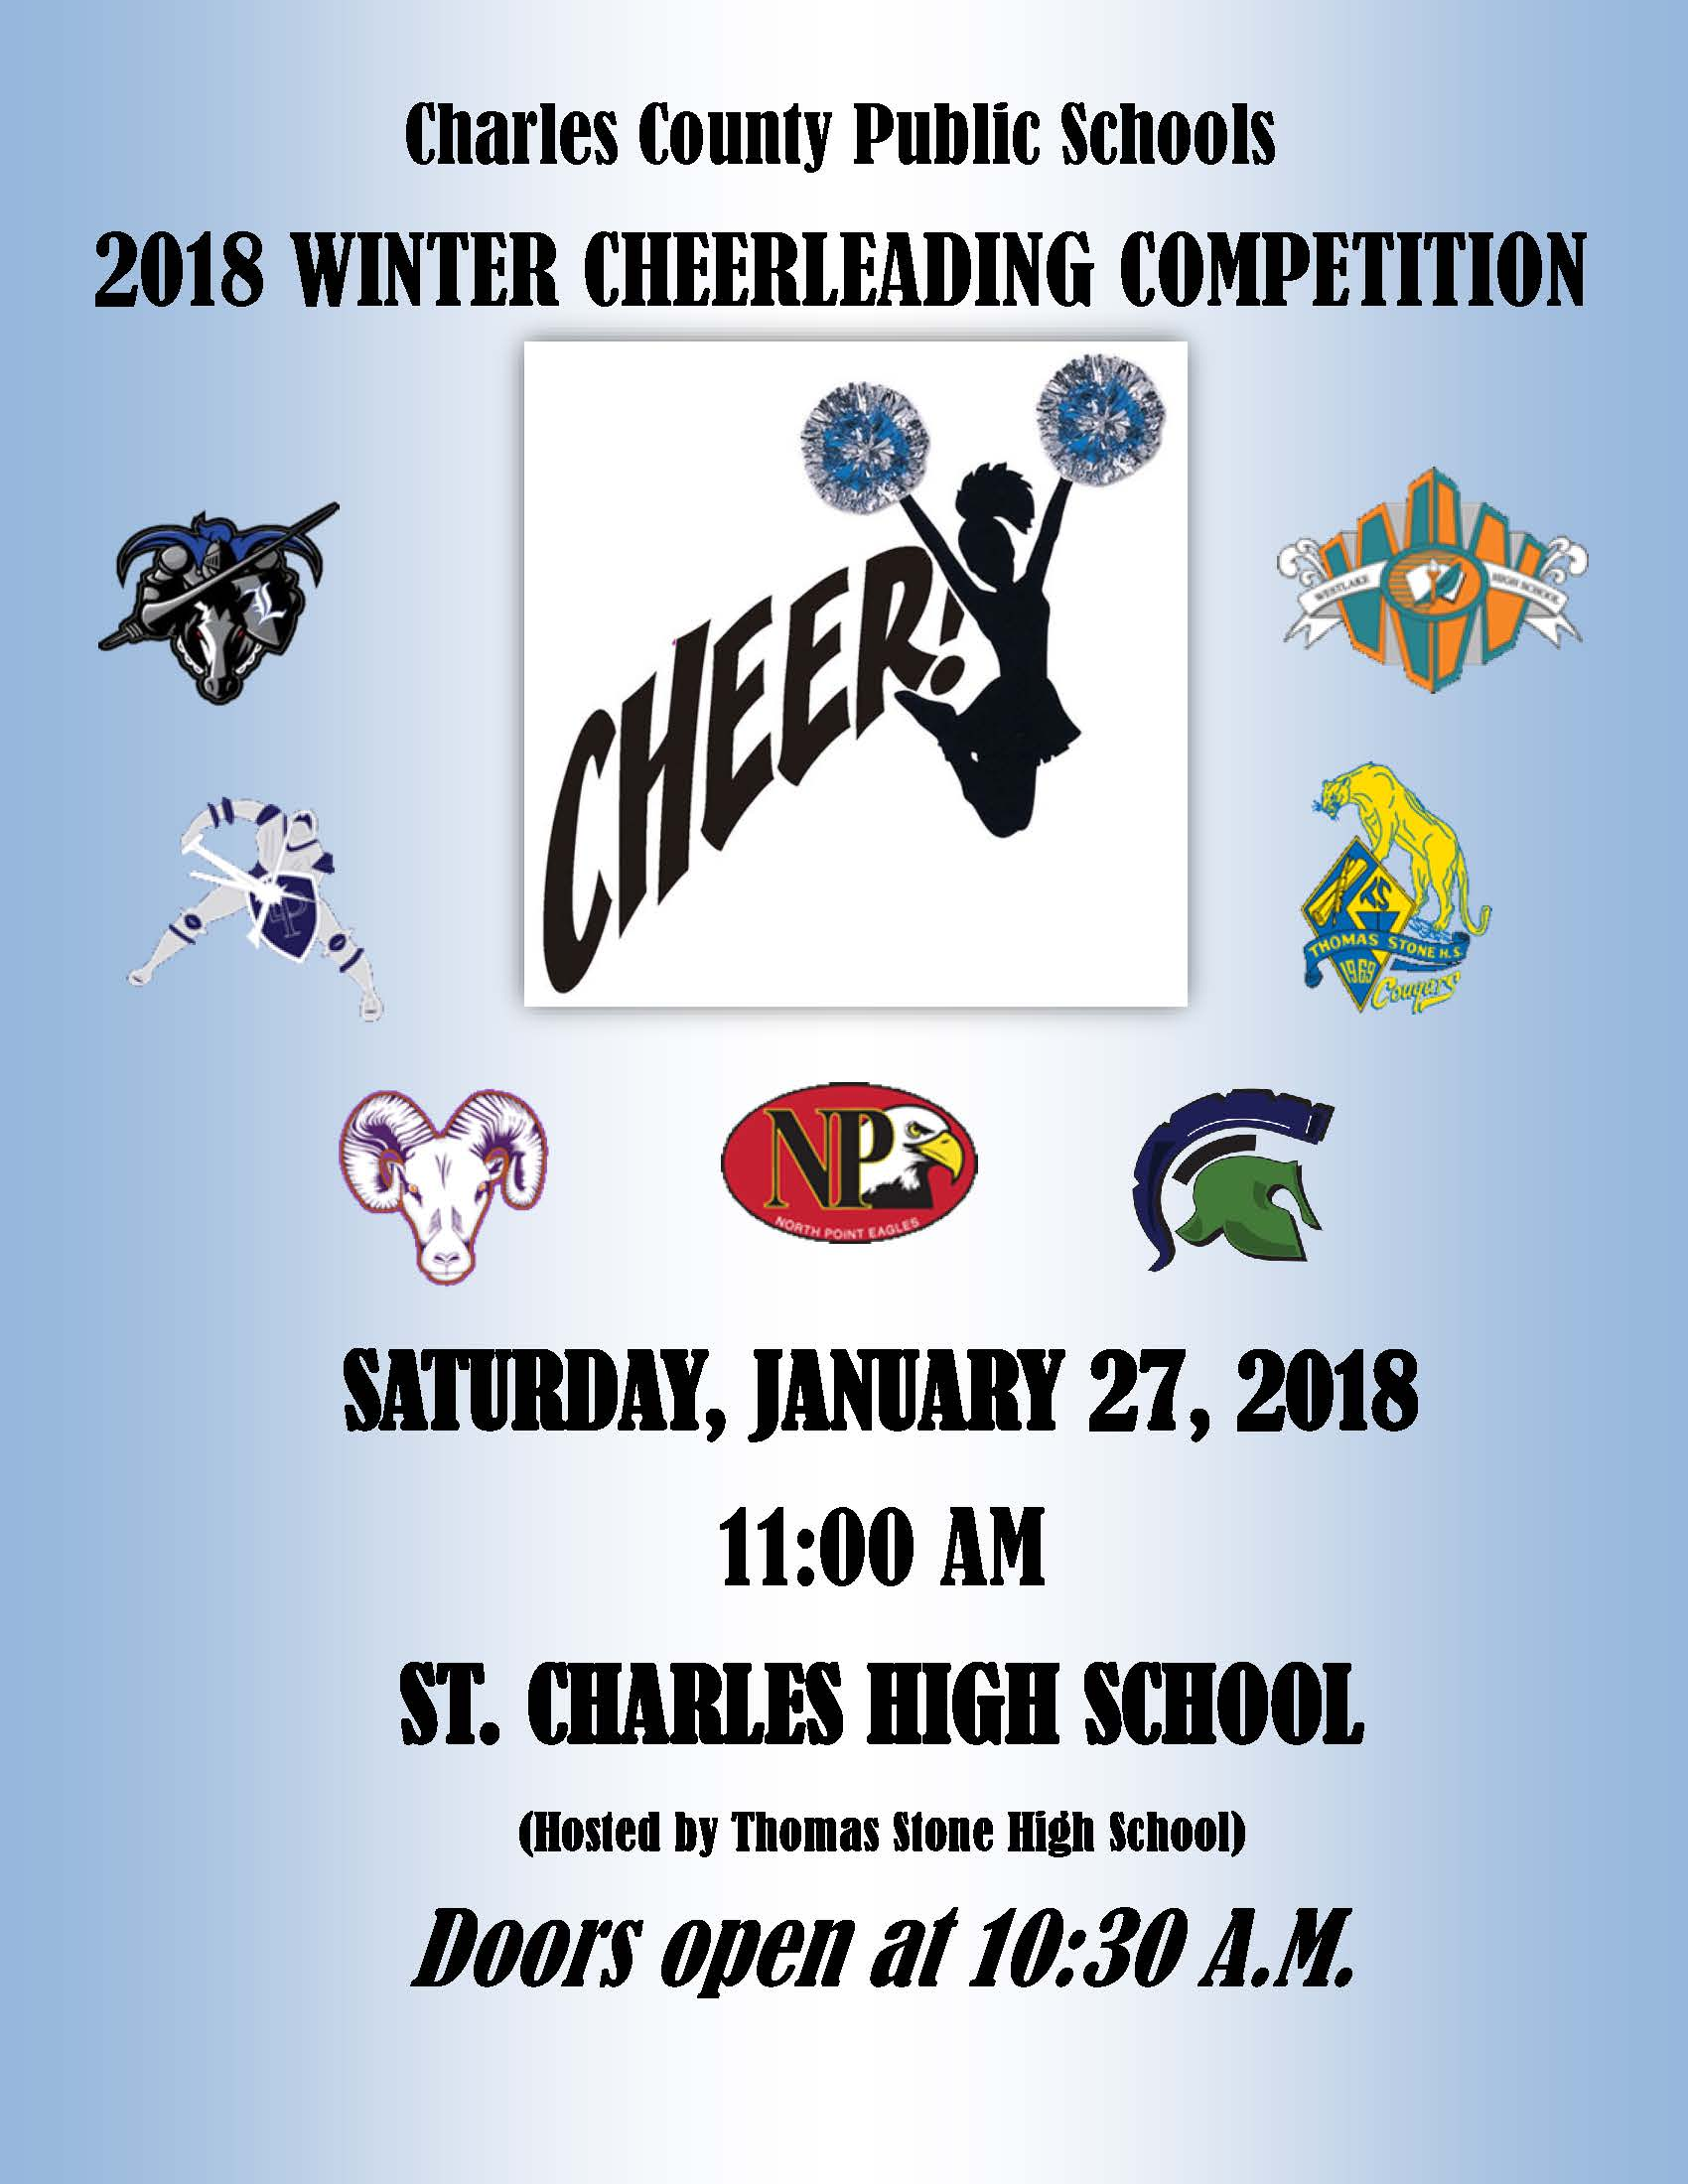 2018 Charles County Winter Cheer Competition